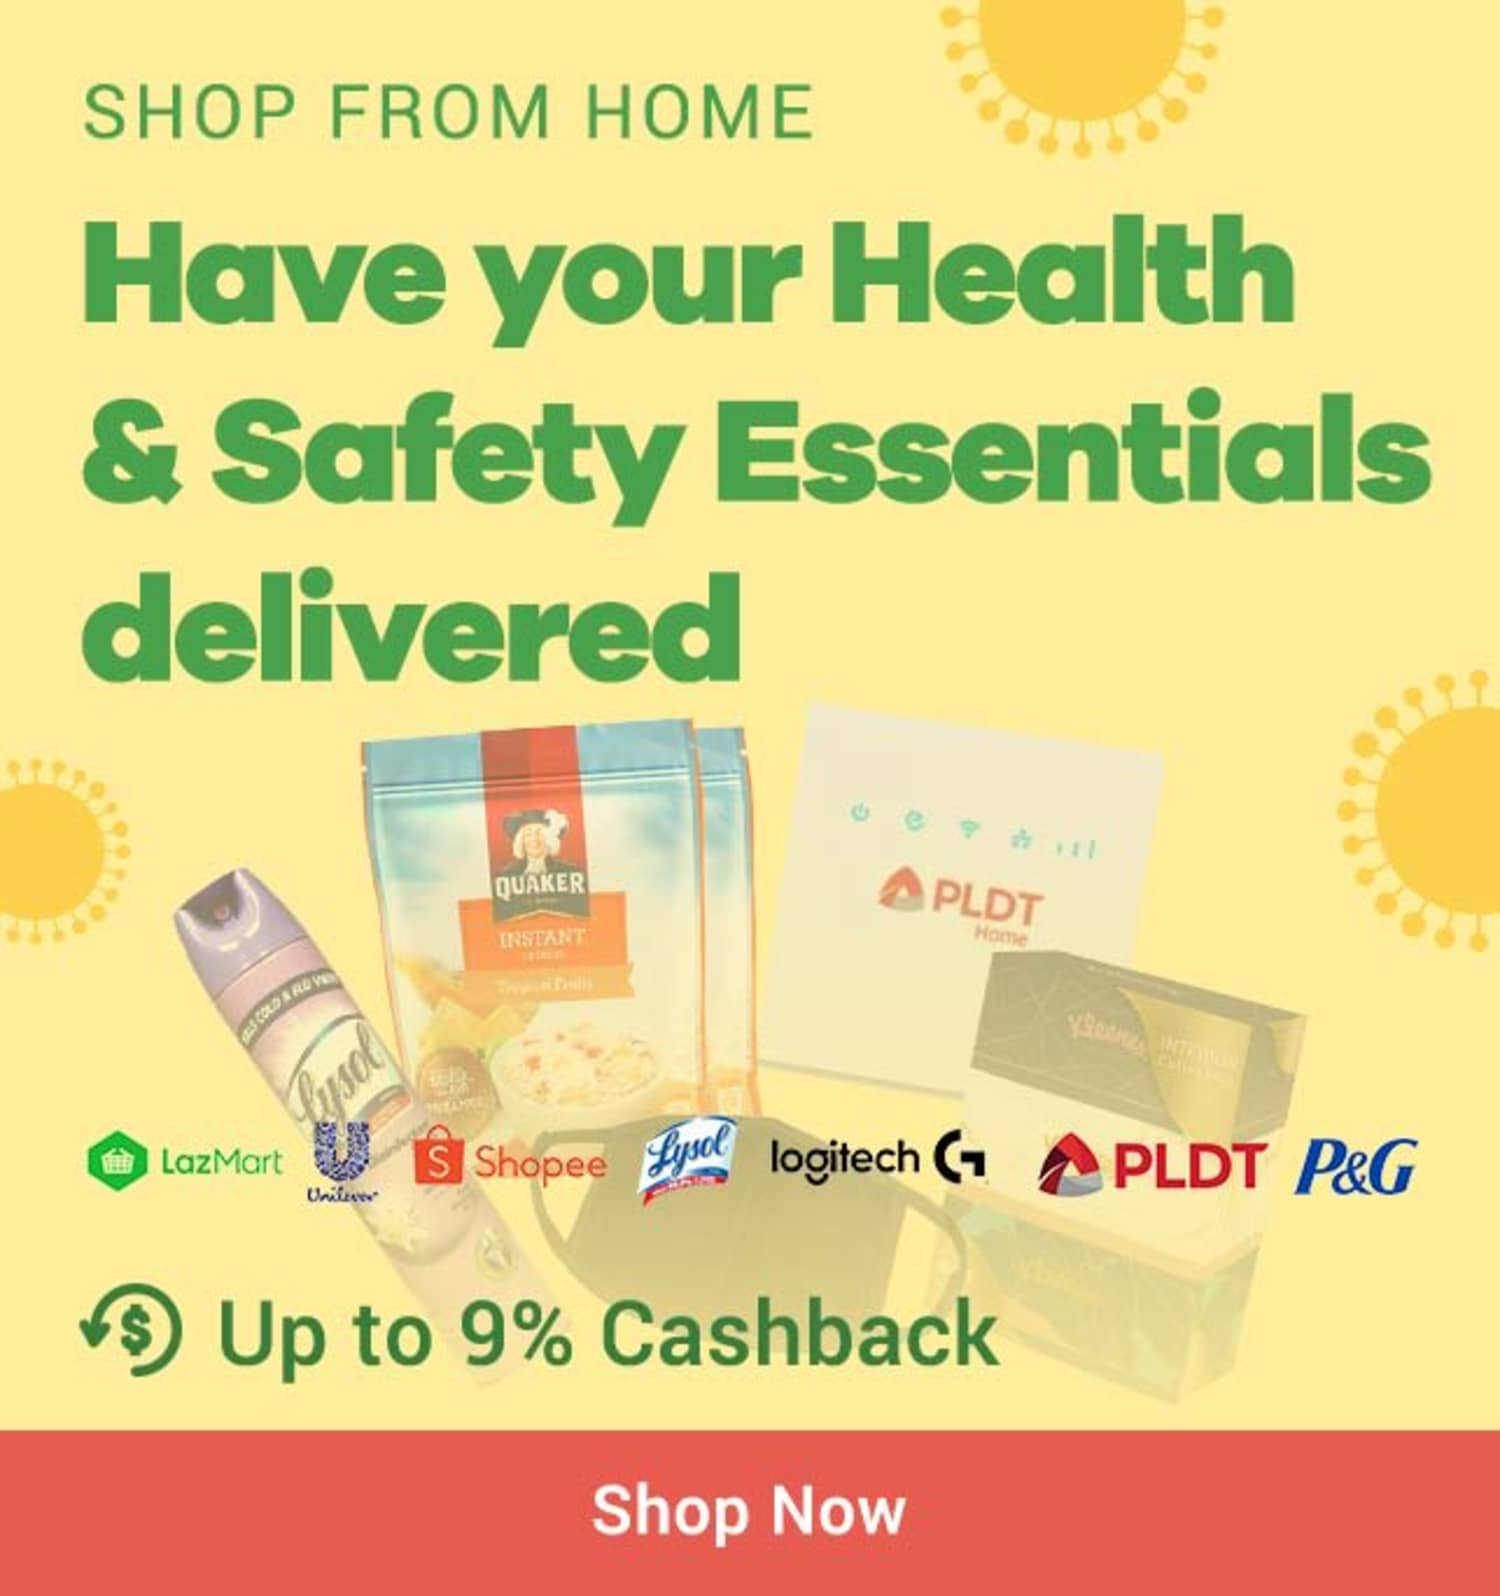 Health & Wellness Daily Essentials Up to 50% off